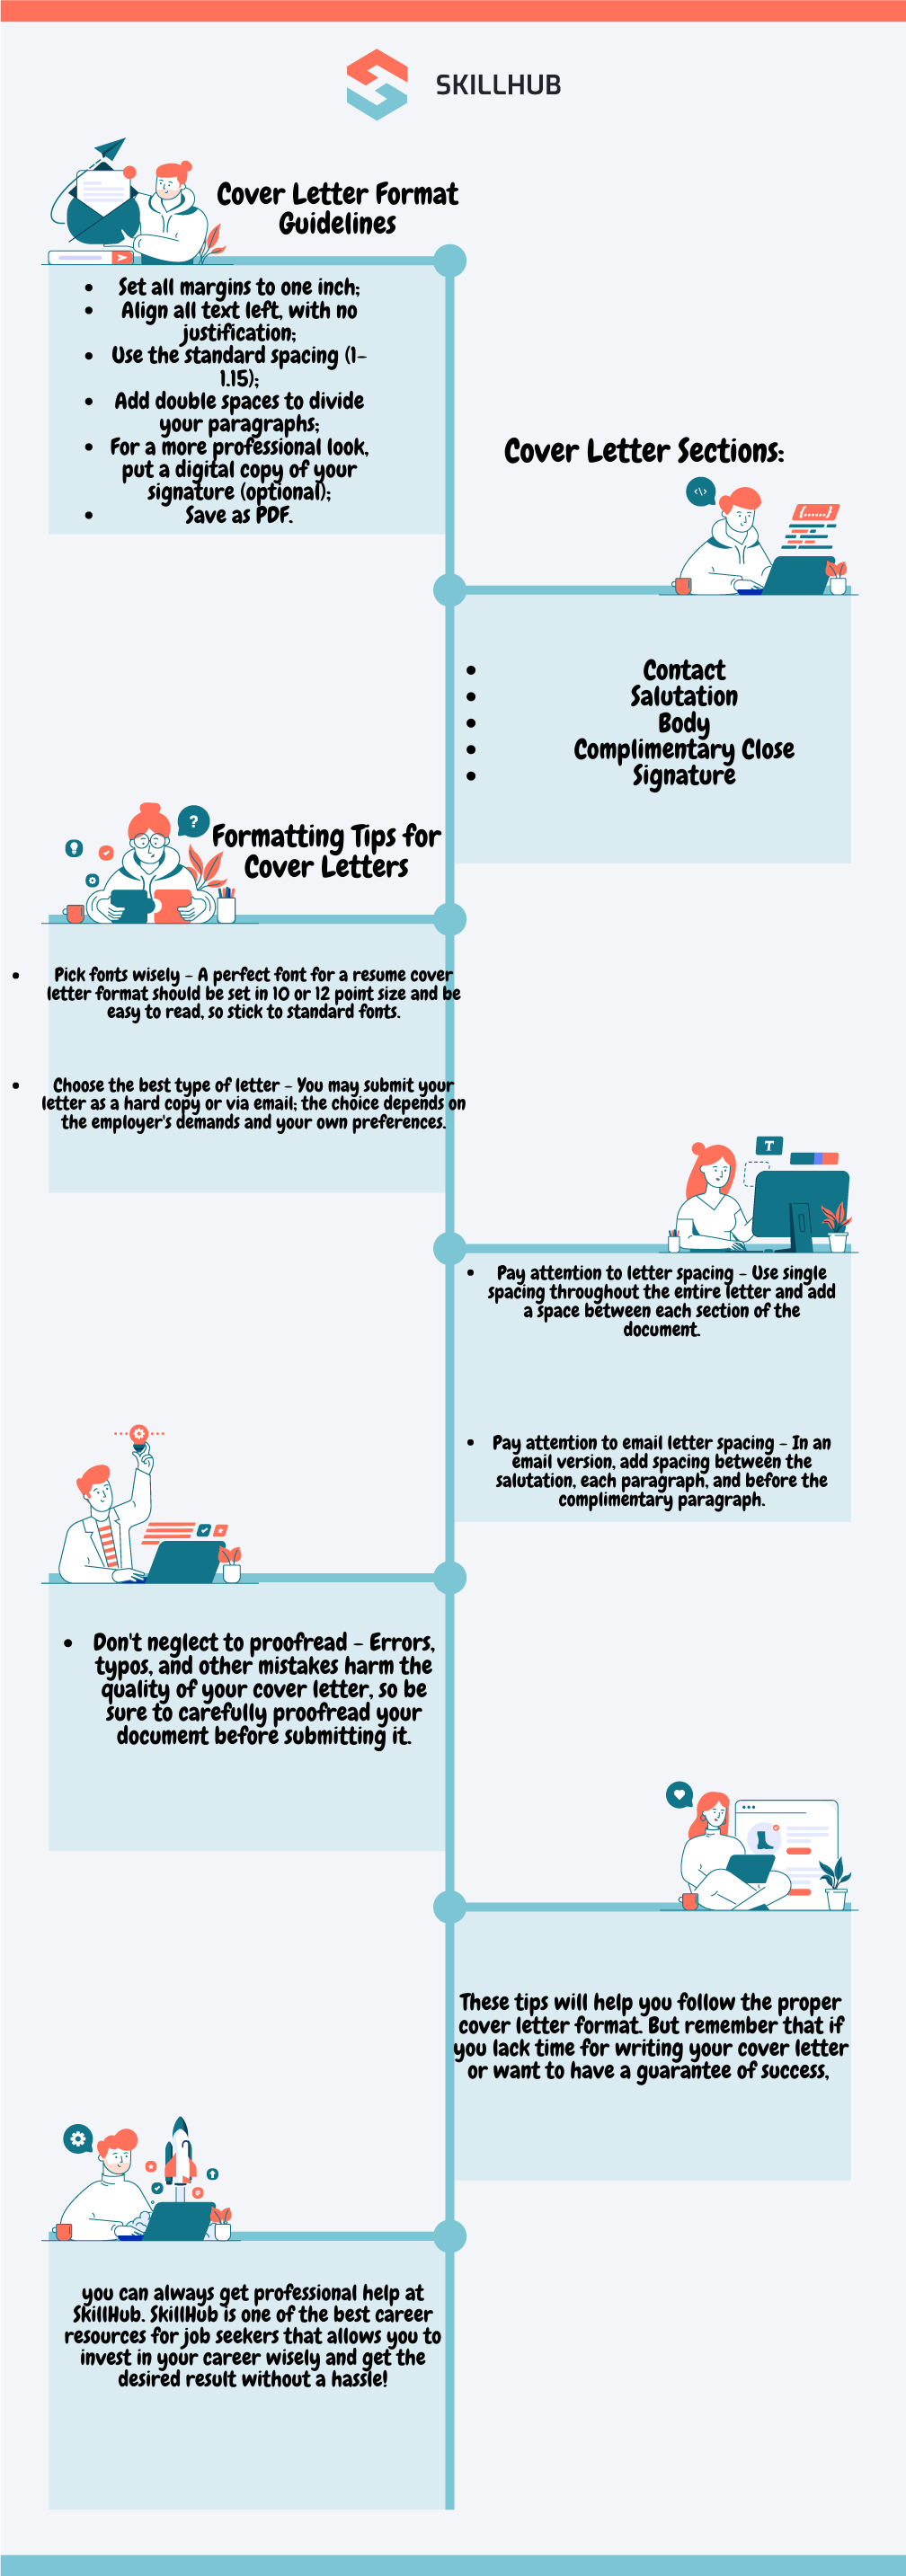 cover letter format,  how to format a cover letter, cover letter format skillhub